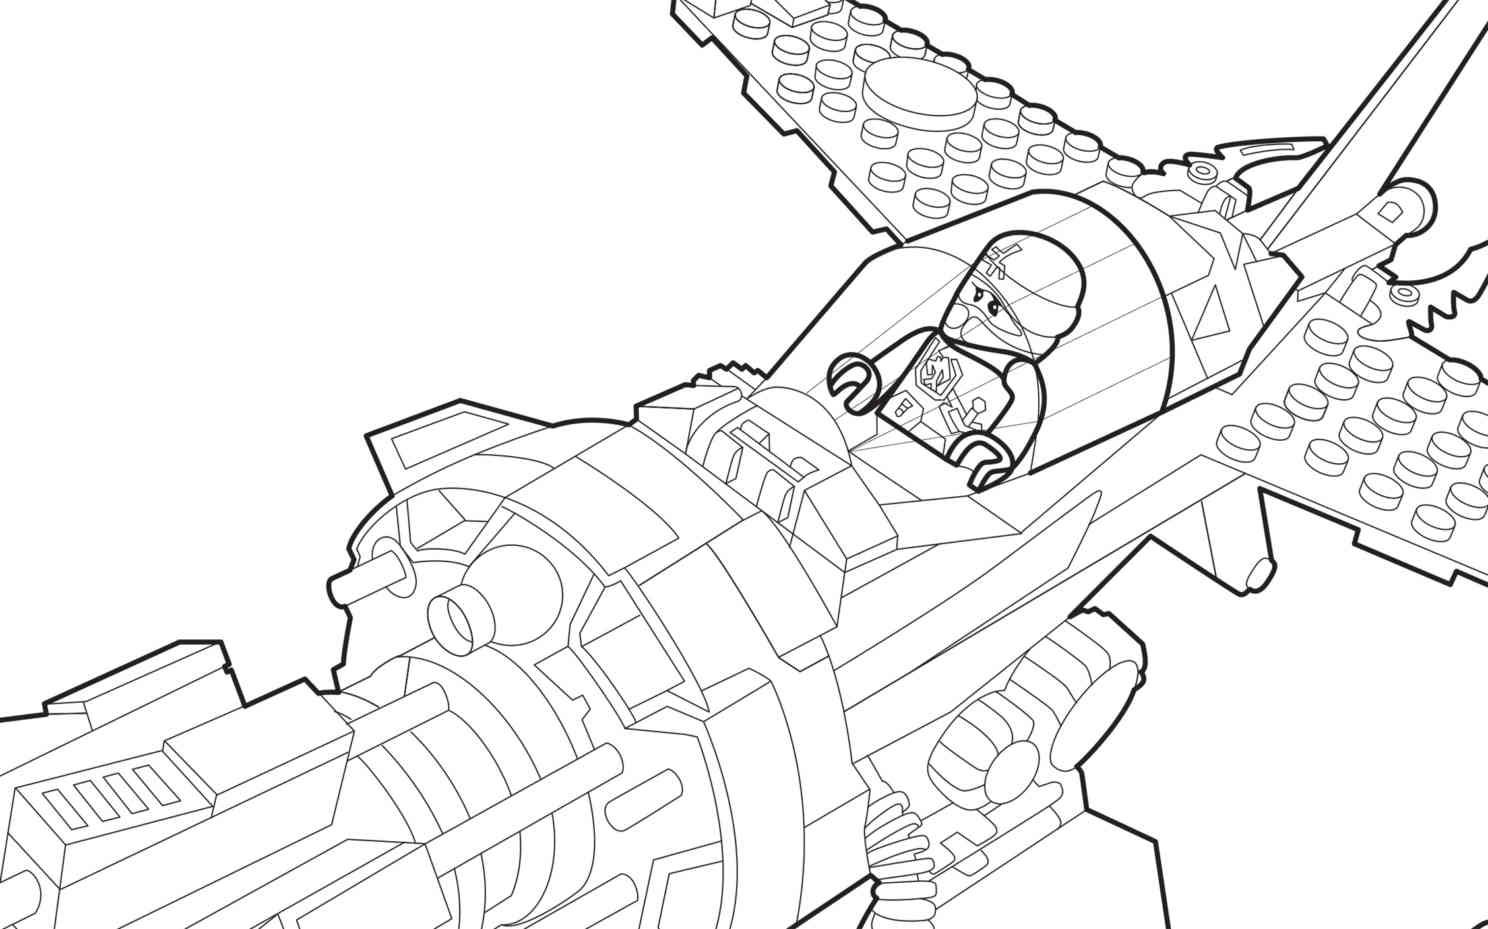 Lego Ninjago 70747 Coloring Sheet Lego Coloring Sheets Pinterest